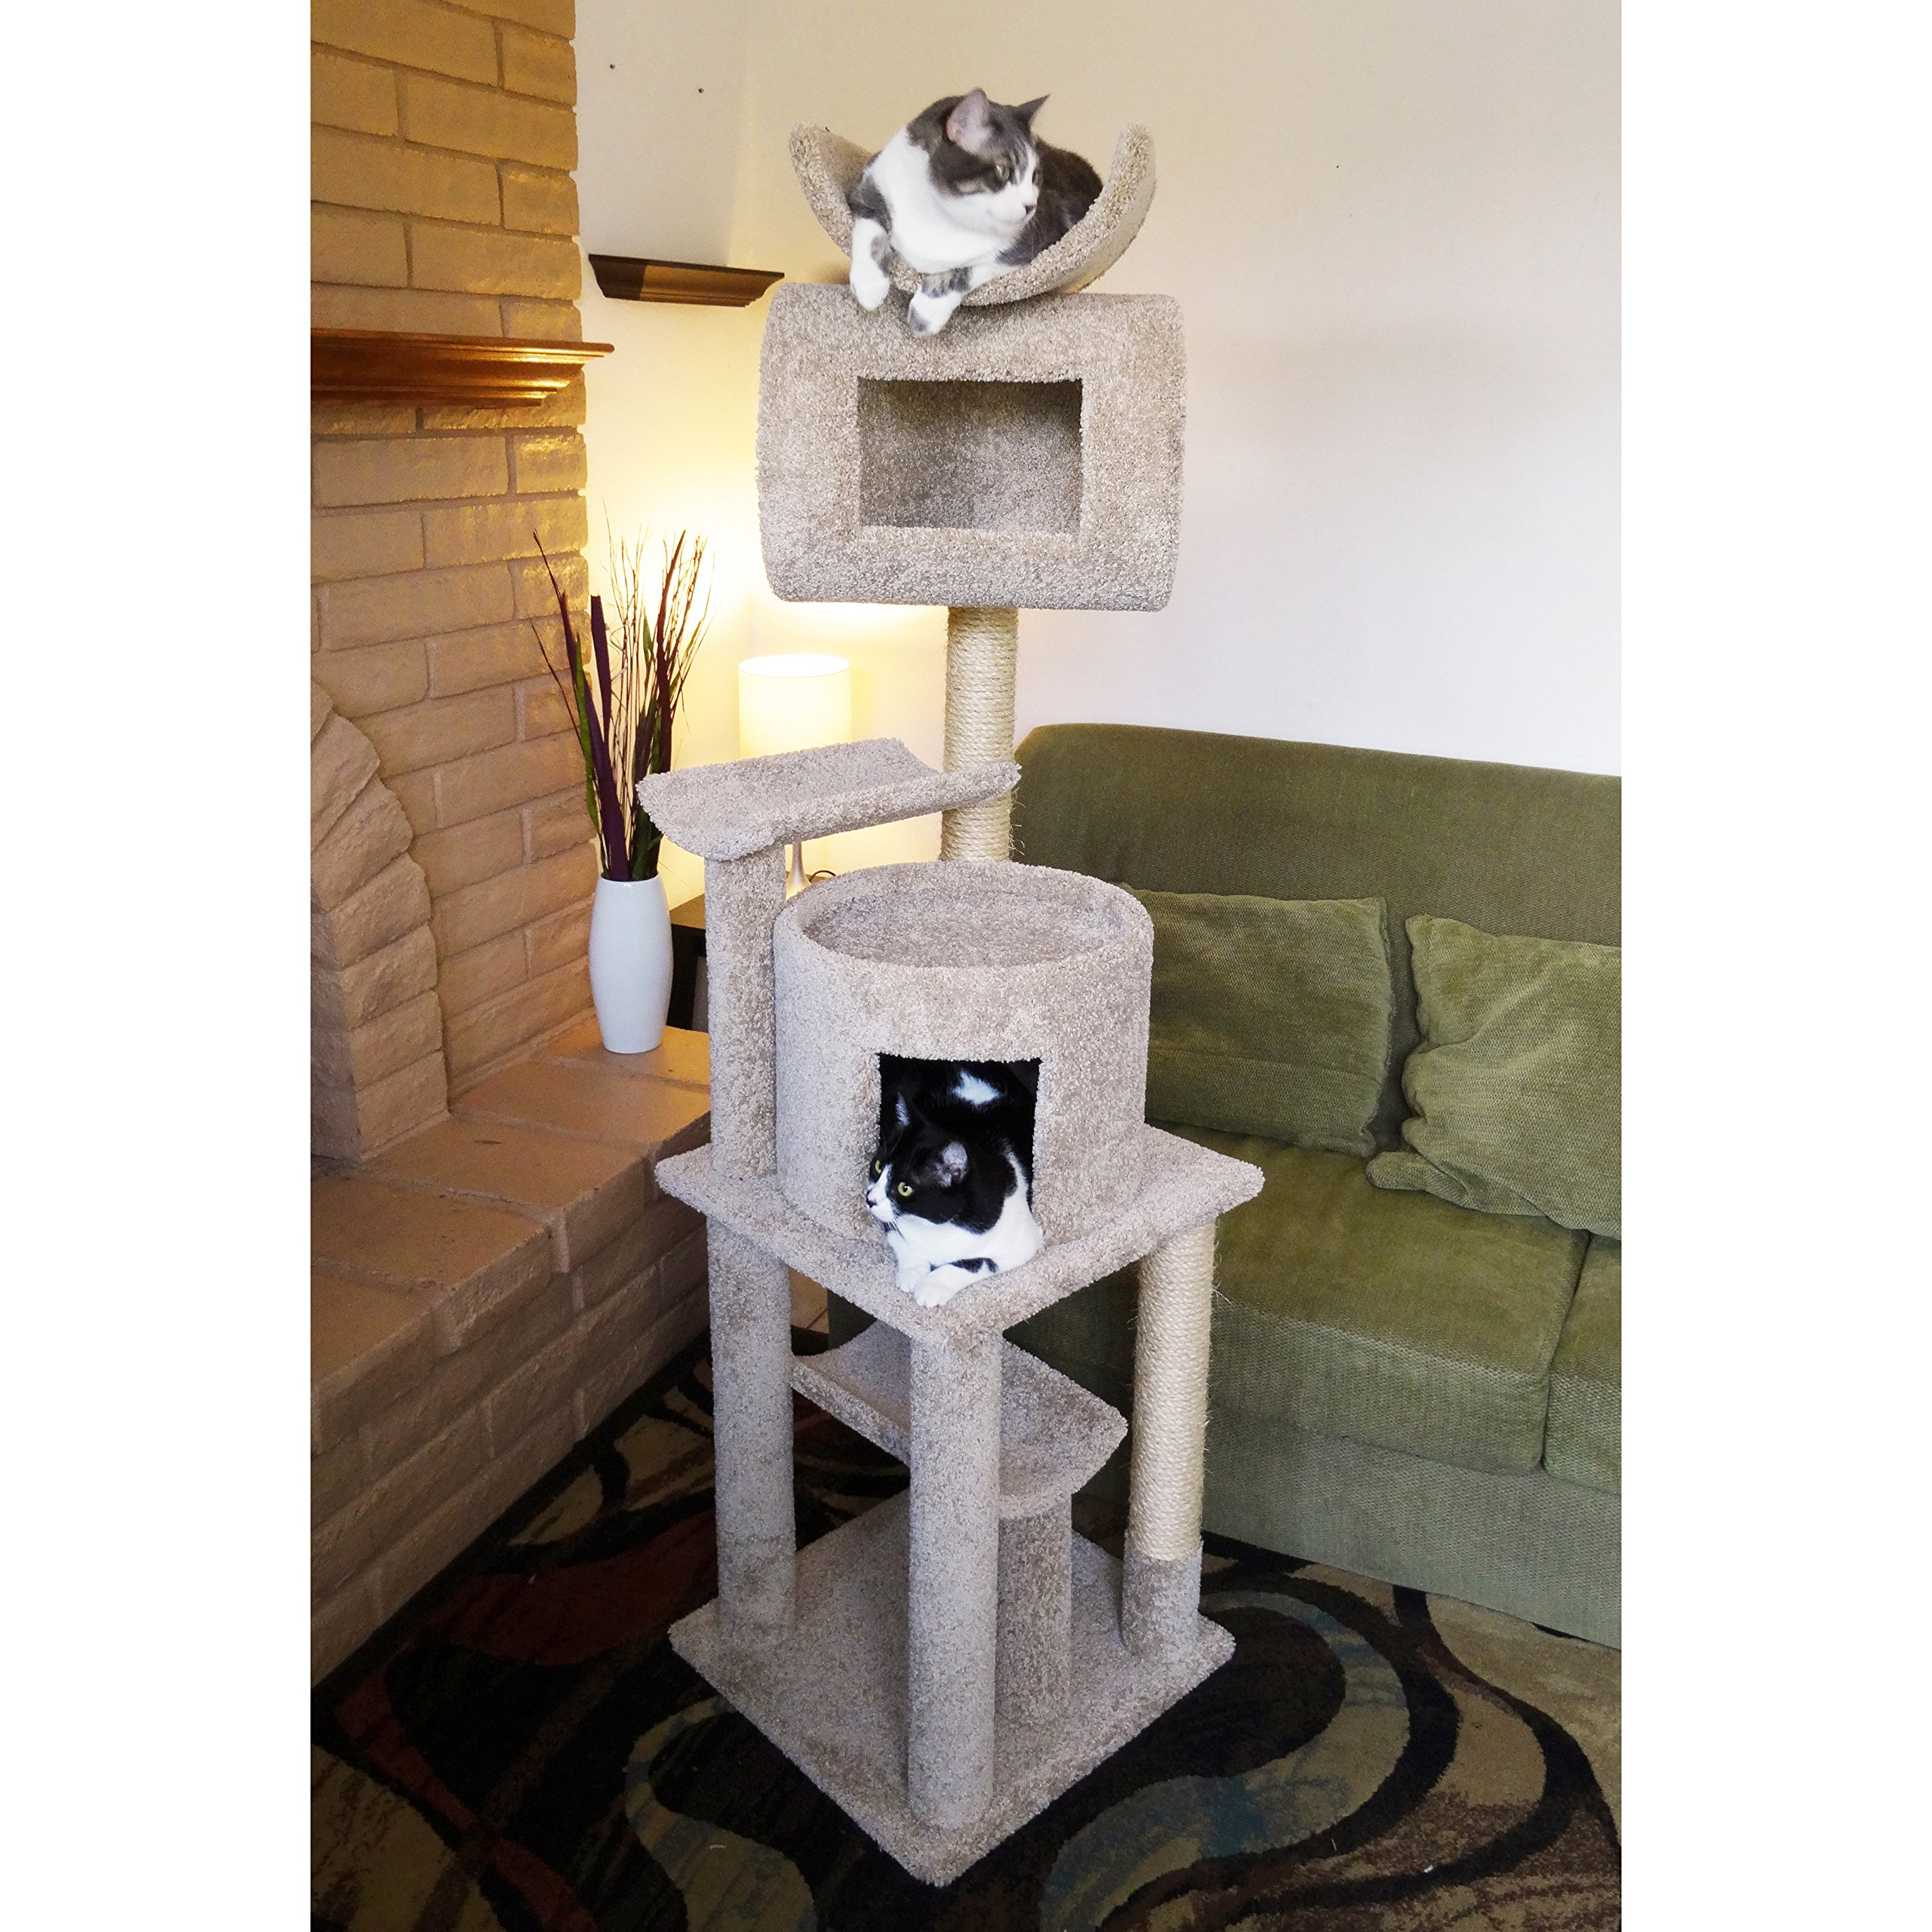 Wooden Cat Tree Tower with Condo, Cradle $ Sisal Posts, Brown Carpet